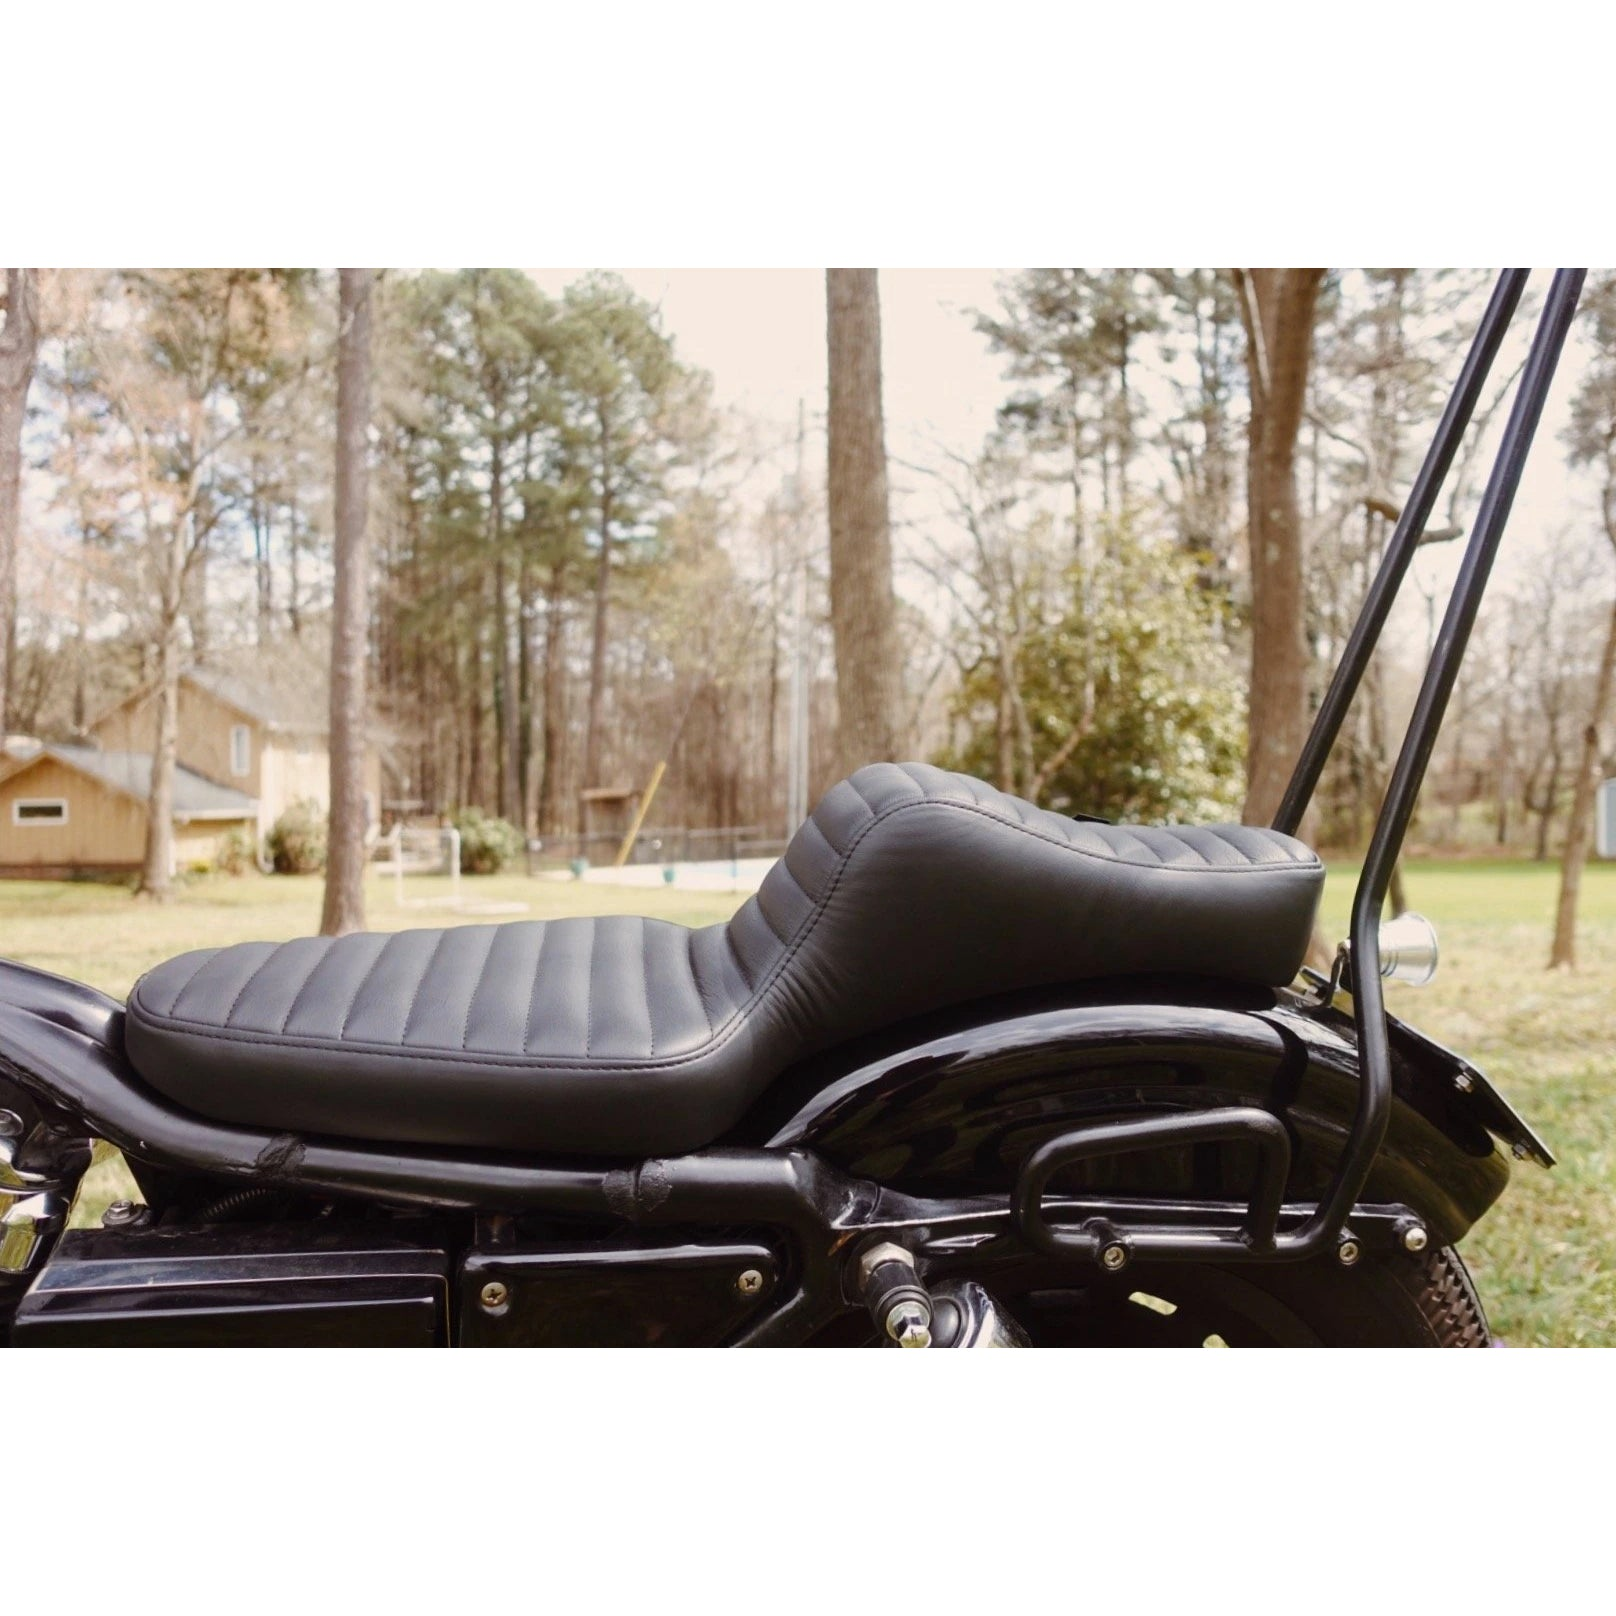 King Cobra Seat - Brown Tuck n' Roll: 82-03 Sportster - MC Parts - Prism Supply